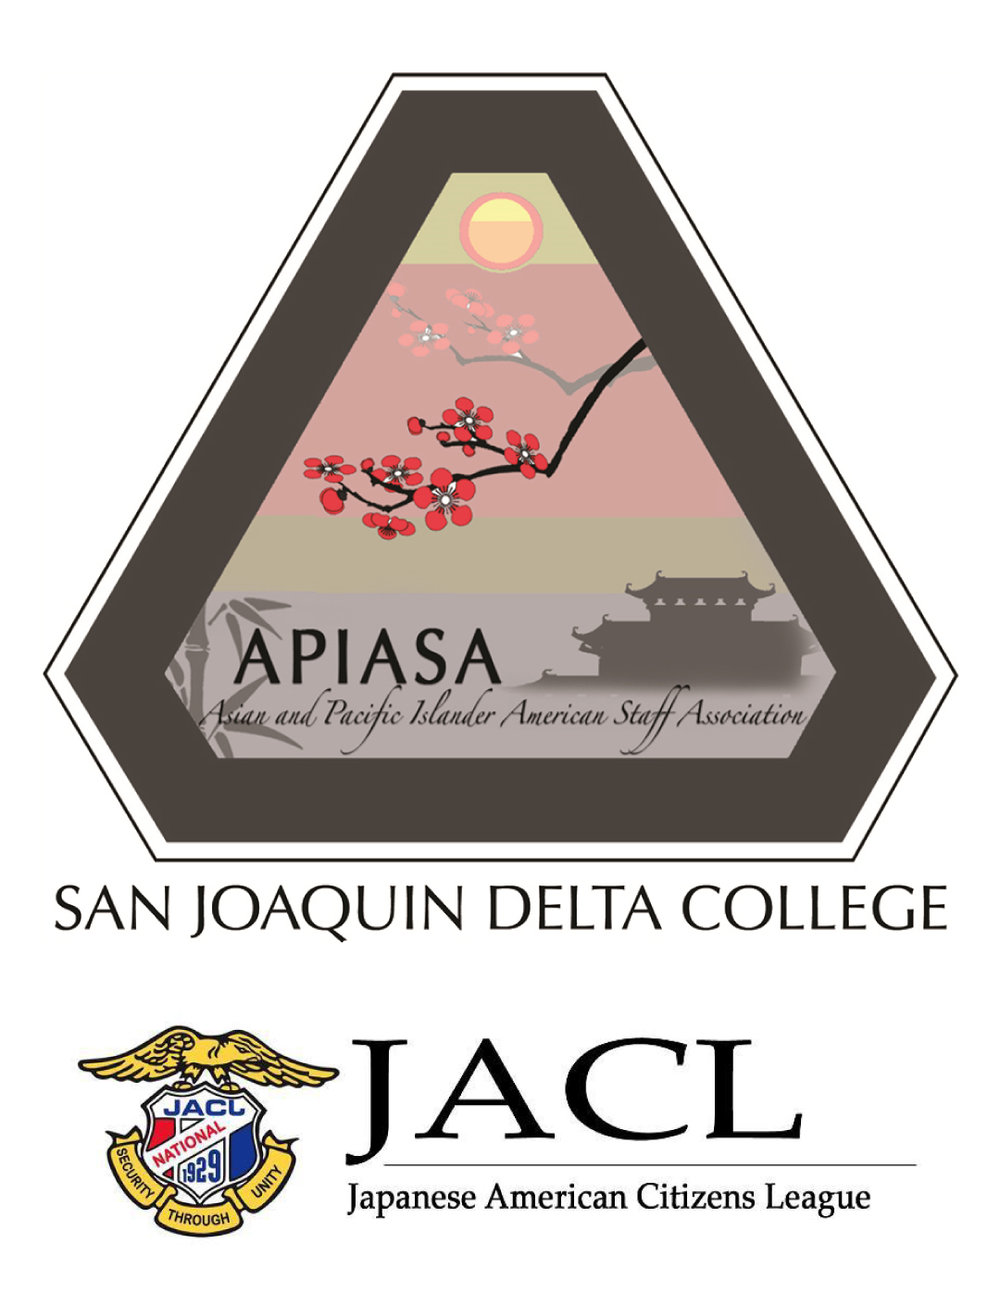 - SCREENING DATE / TIME:Saturday, March 17, 2018 / 1:00 p.m.LOCATION:Day of Remembrance, hosted by the Stockton JACL and the Asian Pacific Islander American Staff Association (APIASA) of San Joaquin Delta CollegeTillie Lewis Theater                      San Joaquin Delta College                5151 Pacific Avenue                Stockton, CA 95207TICKETS:This is a free community screening event. For more information, please contact Aeko Yoshikawa at aeko@sbcglobal.net.